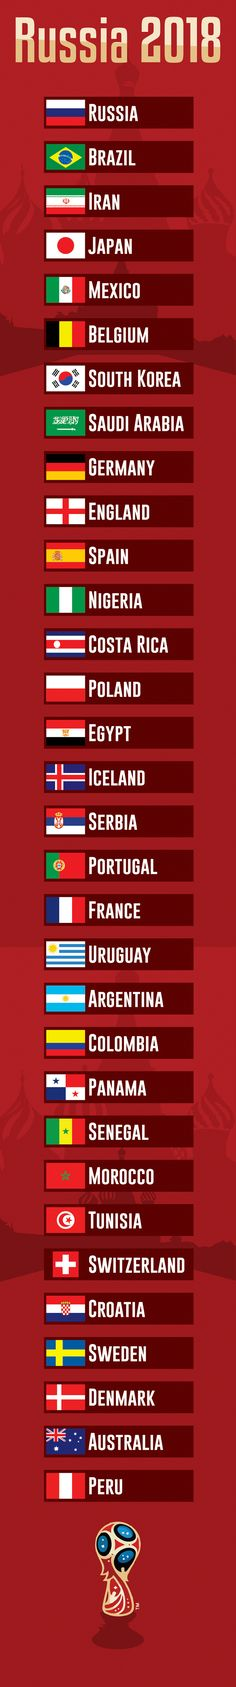 World Cup Russia 2018  32 countries  #WorldCup #Russia2018 #Russia #Brazil #Mexico #Deutschland #England #Espana #Poland #Portugal #France #Argentina  Source #FIFA and Wiki  #countries #maps #map #flags #flag #infographic #graphic #travels #guide #sports #football #soccer   #ranking #visual #pixels #forpix #inforpx #soccerinfographic